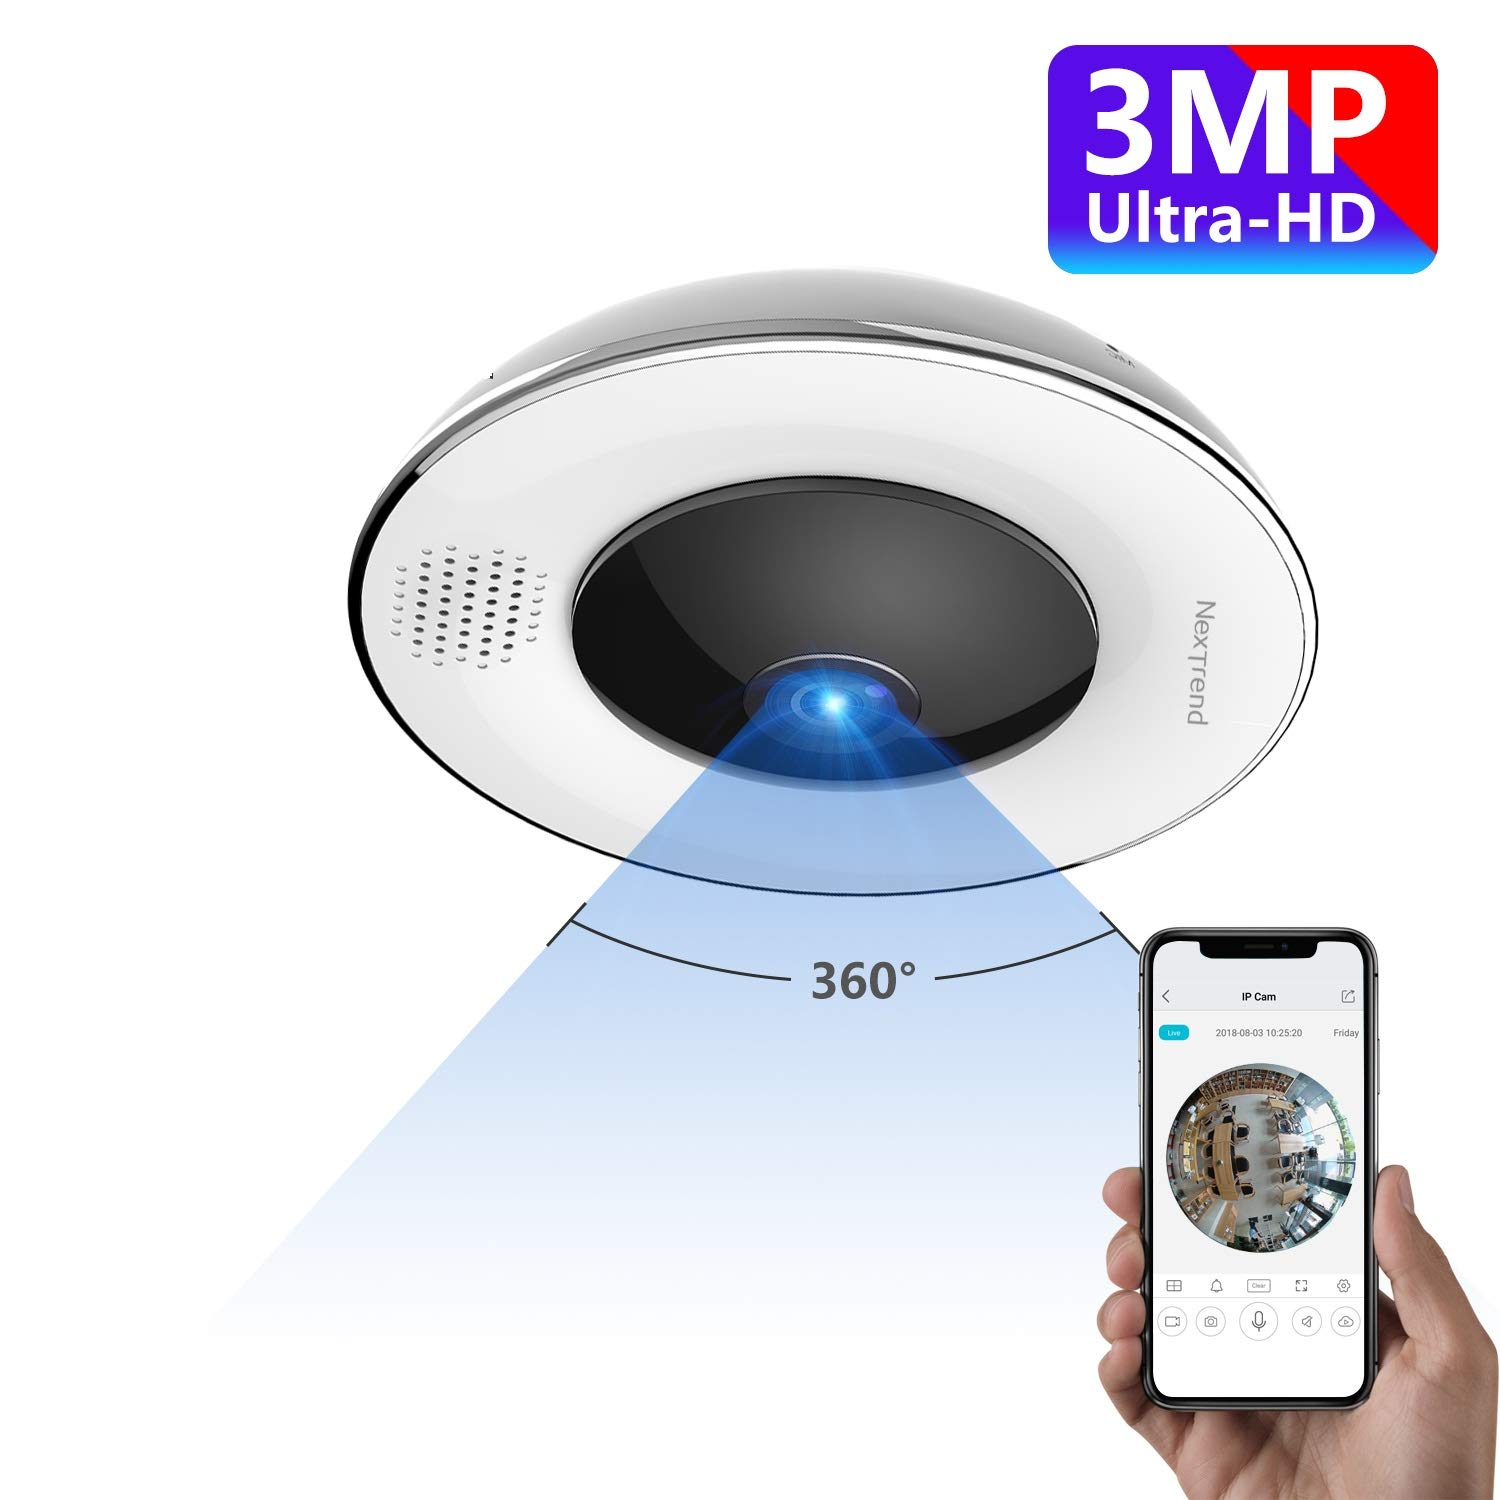 360° Panoramic Wireless WiFi IP Camera, NexTrend Ultra HD Home Security Camera with Fisheye Lens, Night Vision, Two Way Audio, Motion Detection, Support 128GB TF Card&Cloud Service by NexTrend